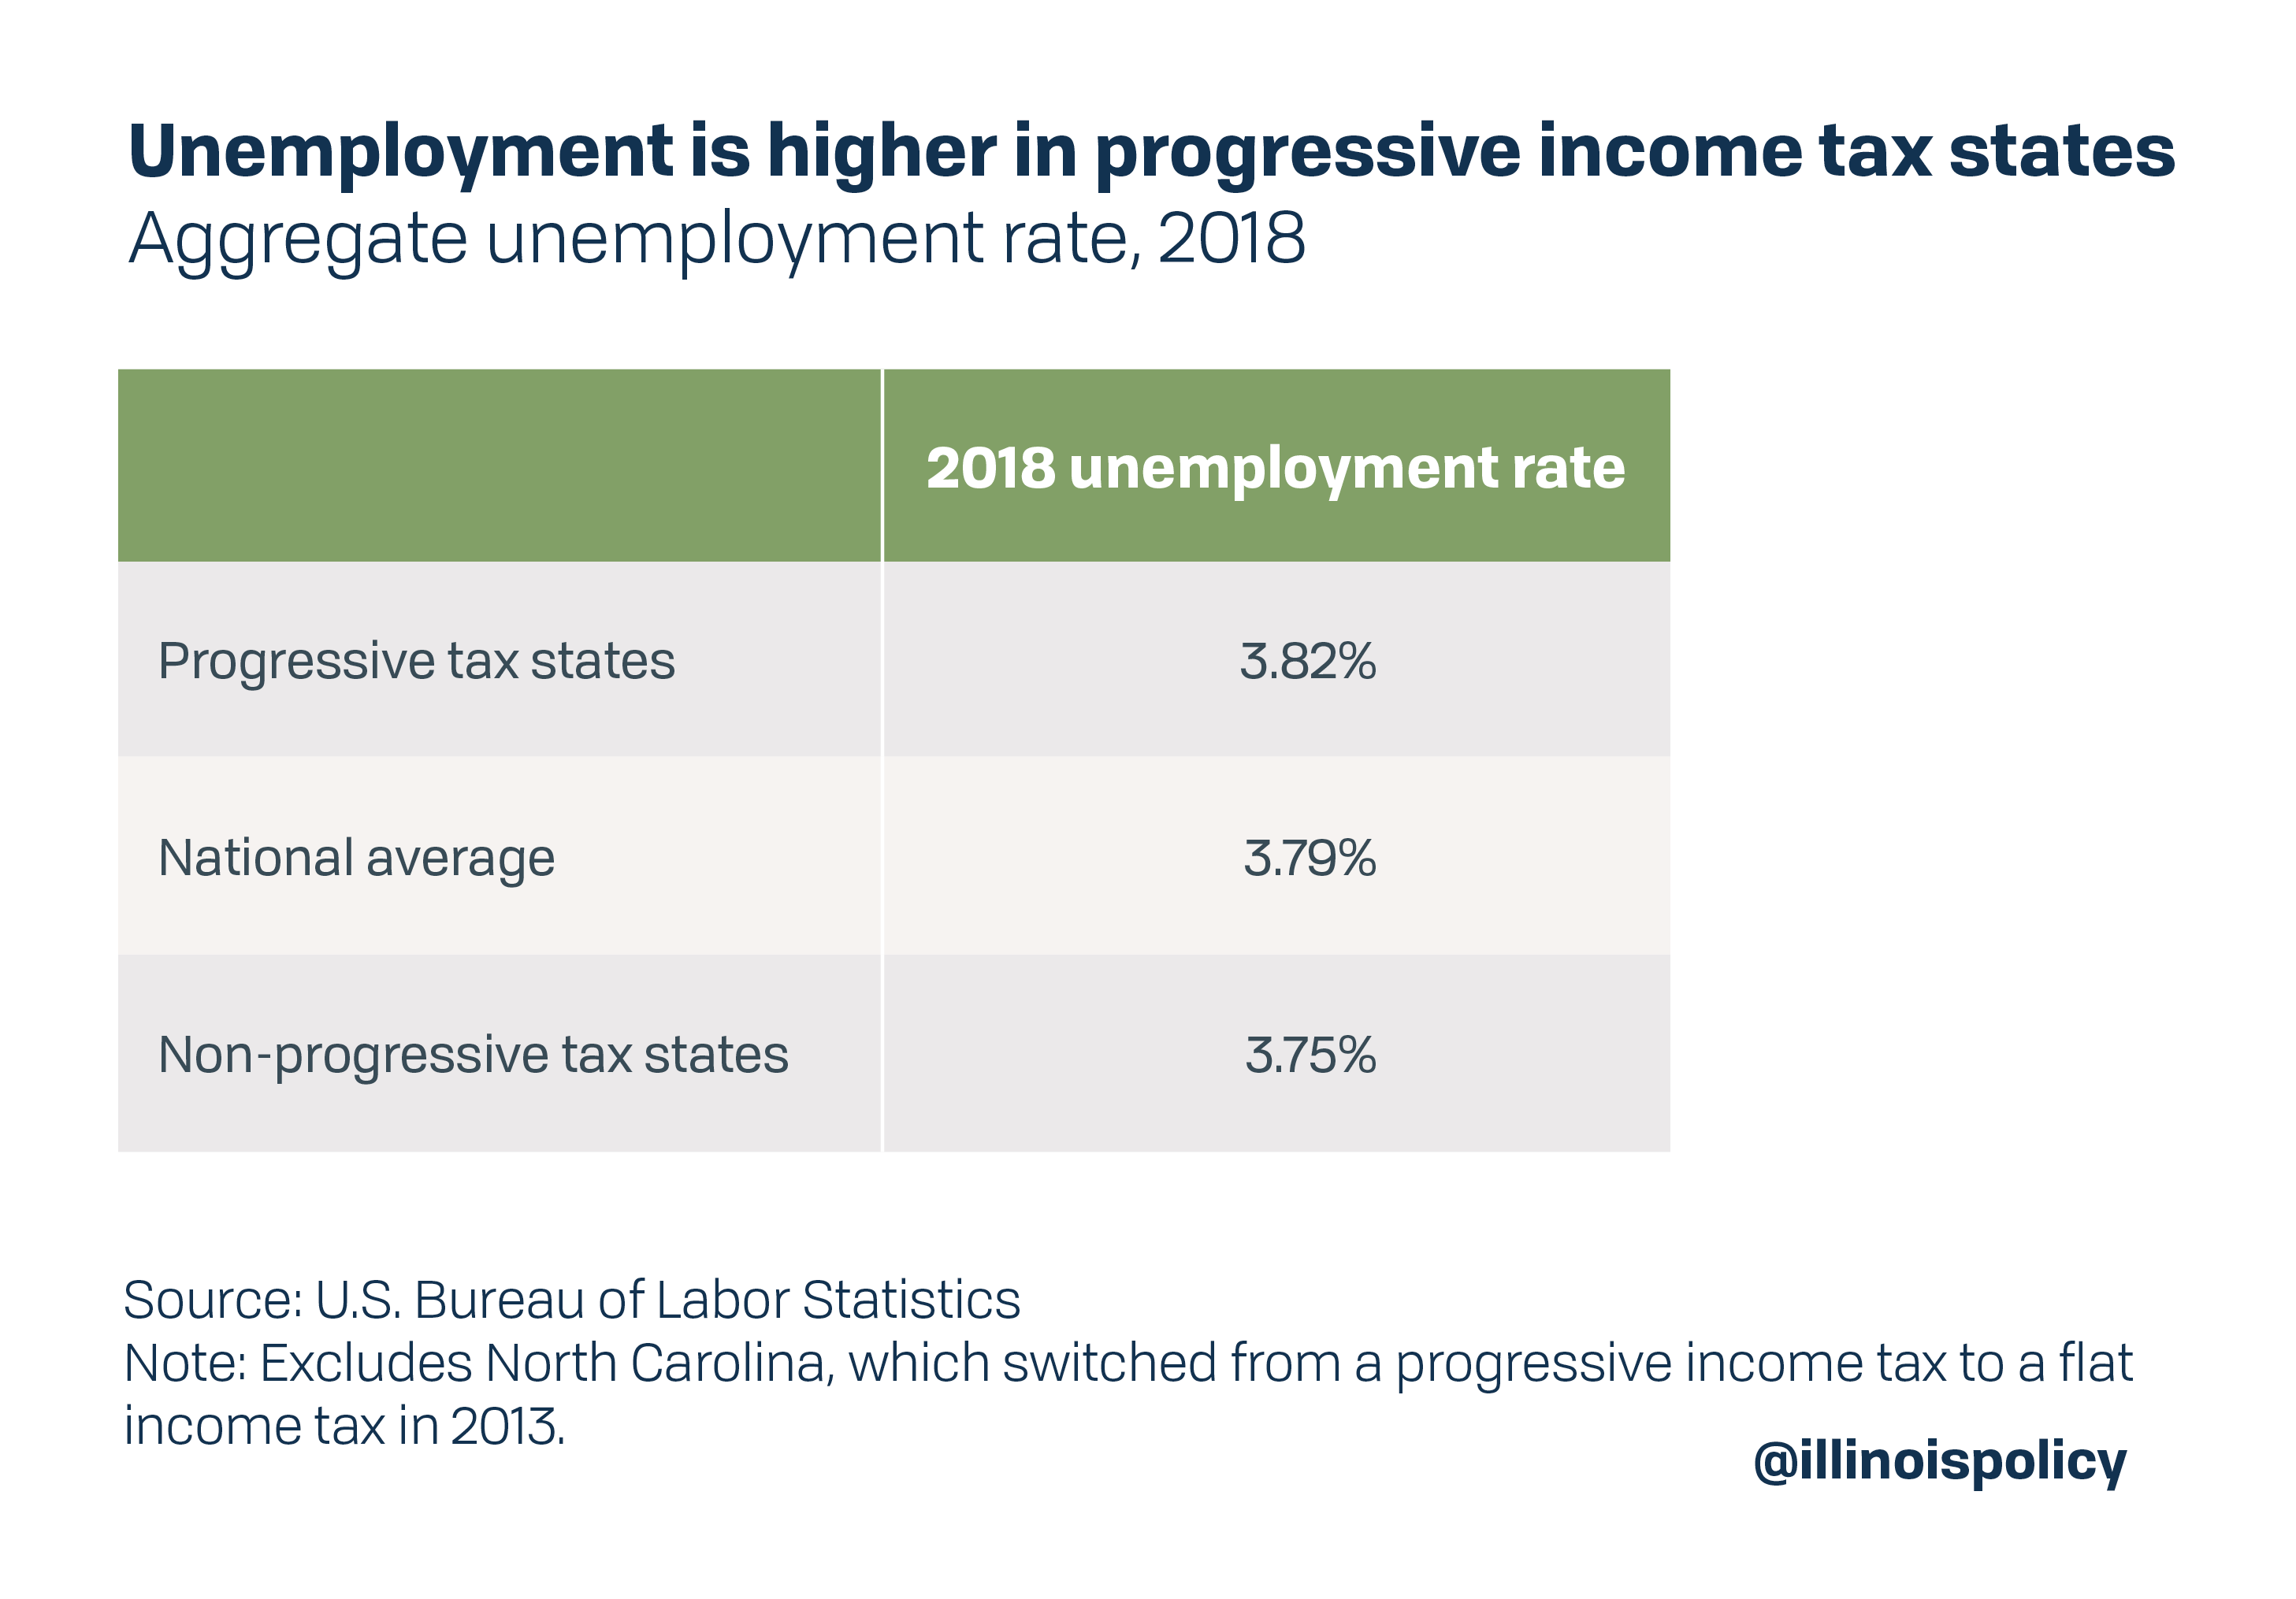 Unemployment is higher in progressive income tax states